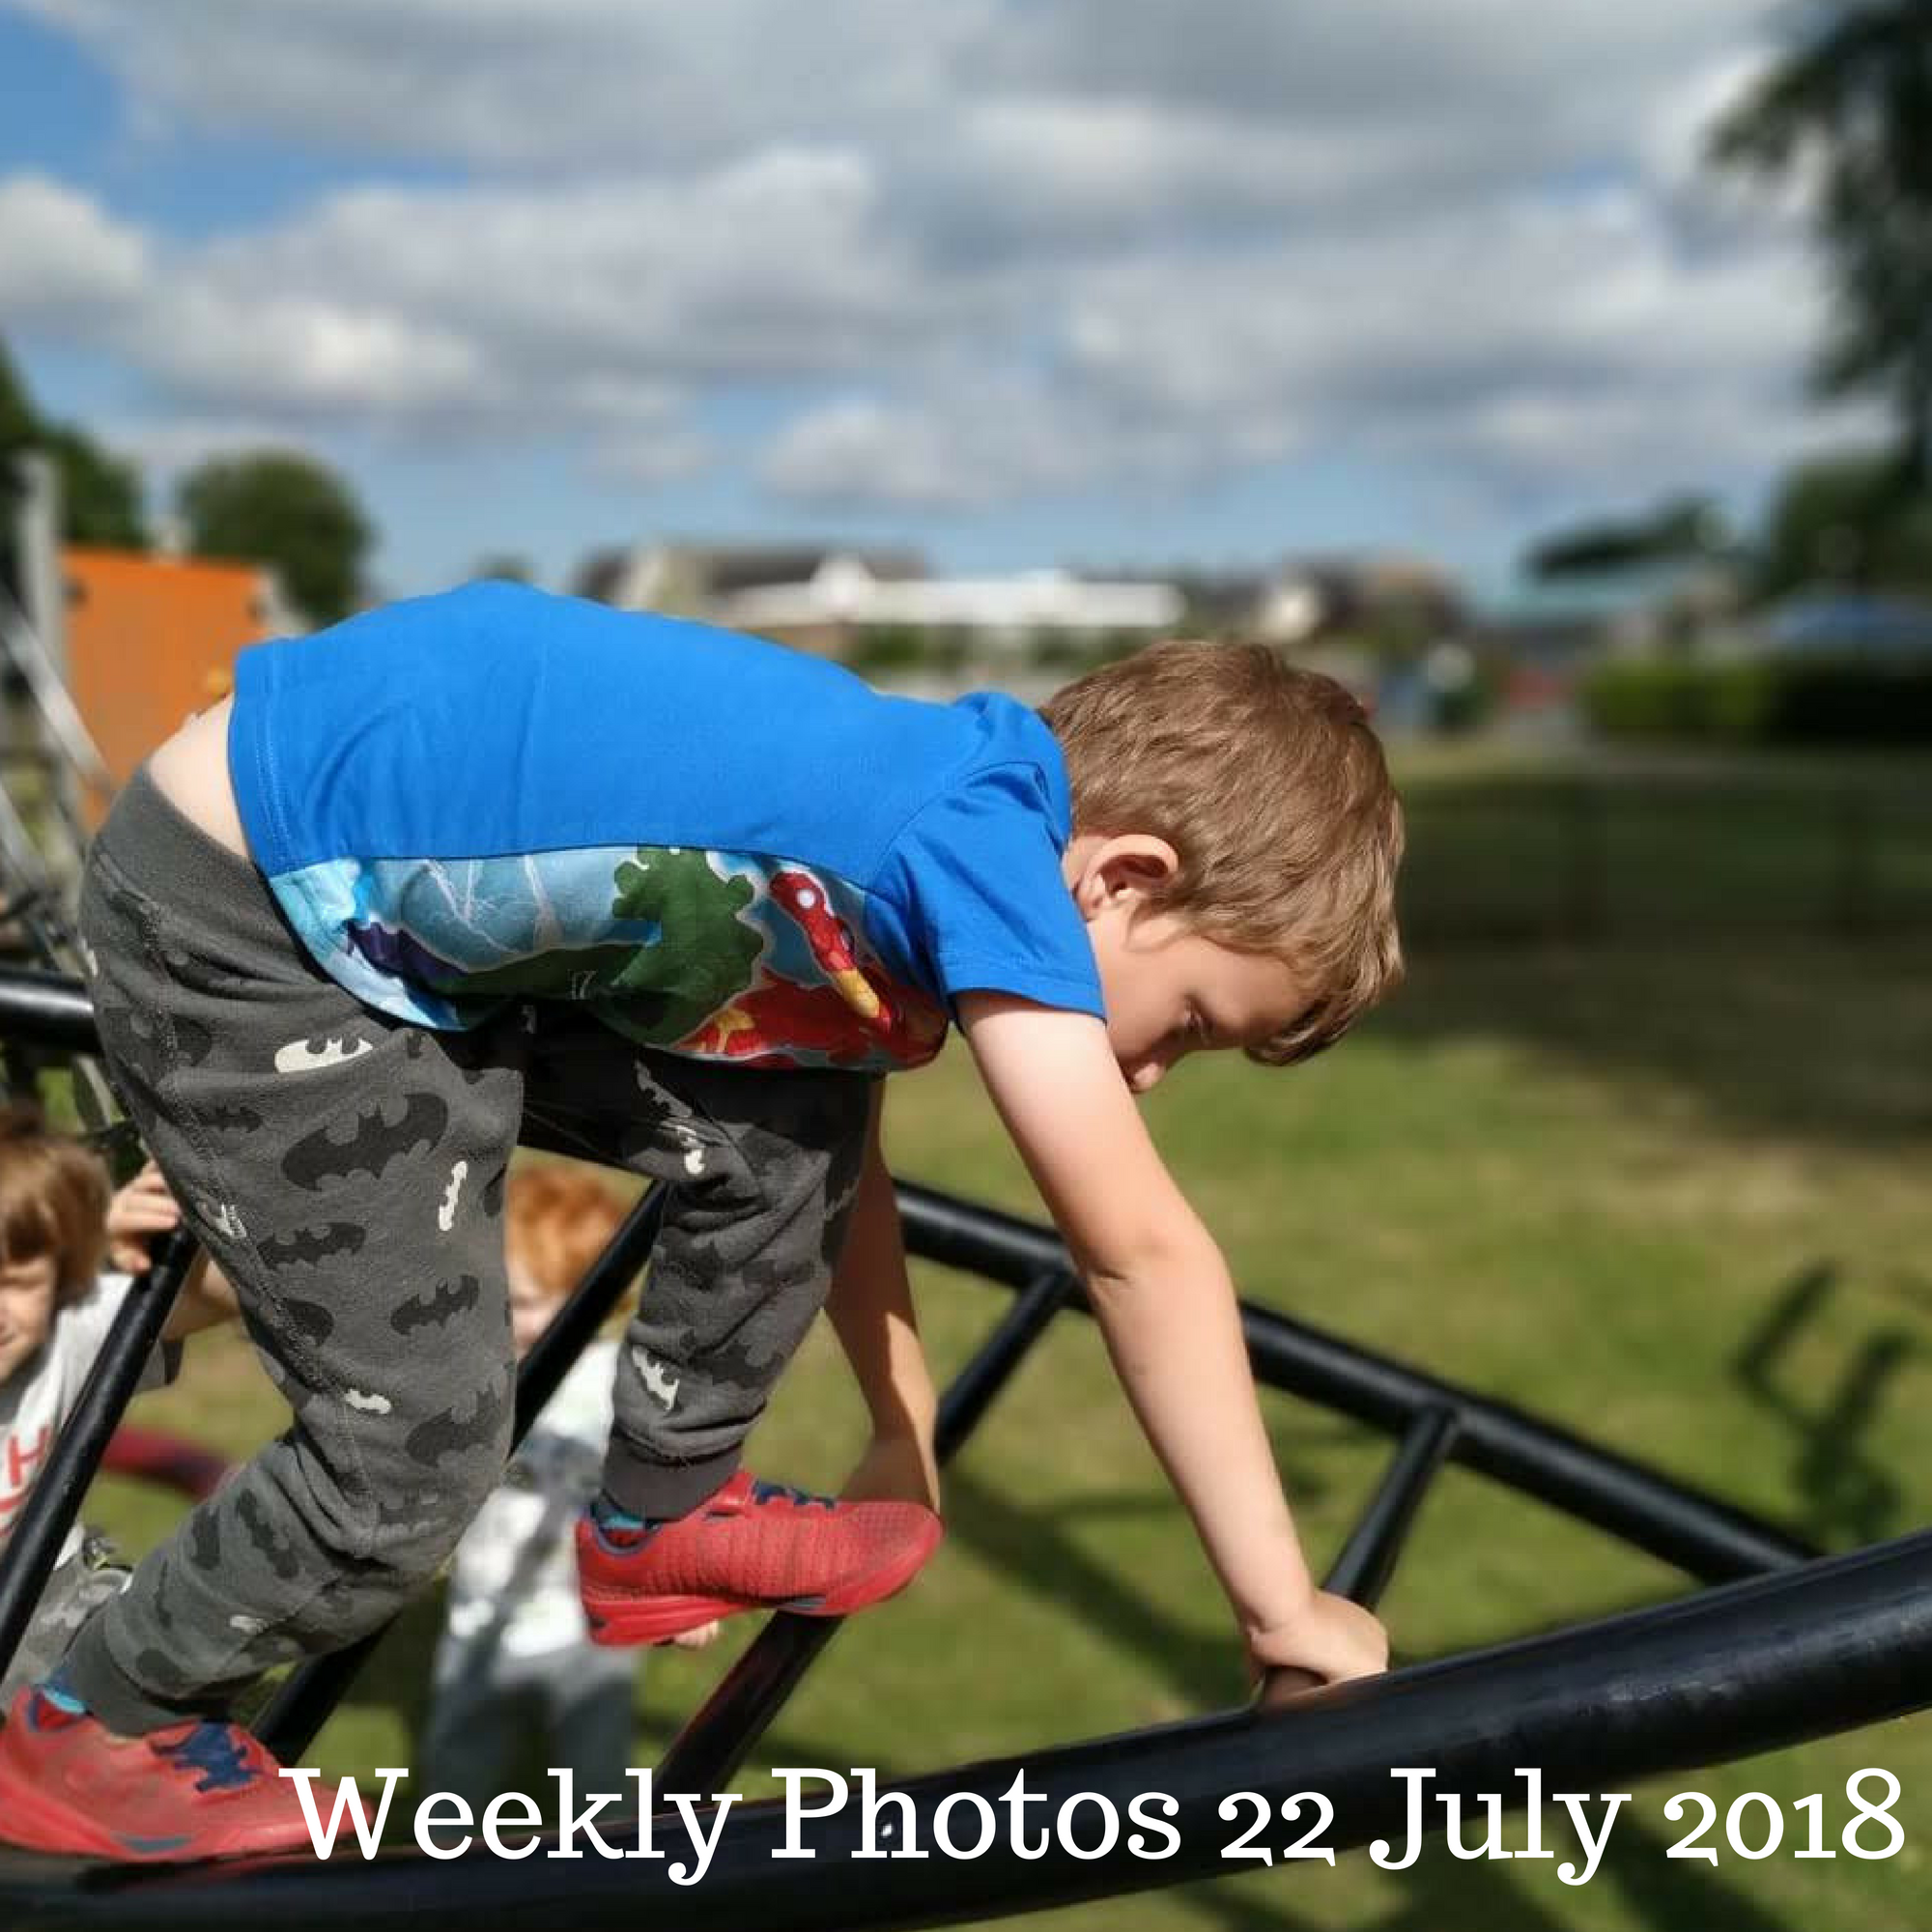 Weekly Photos 22 July 2018